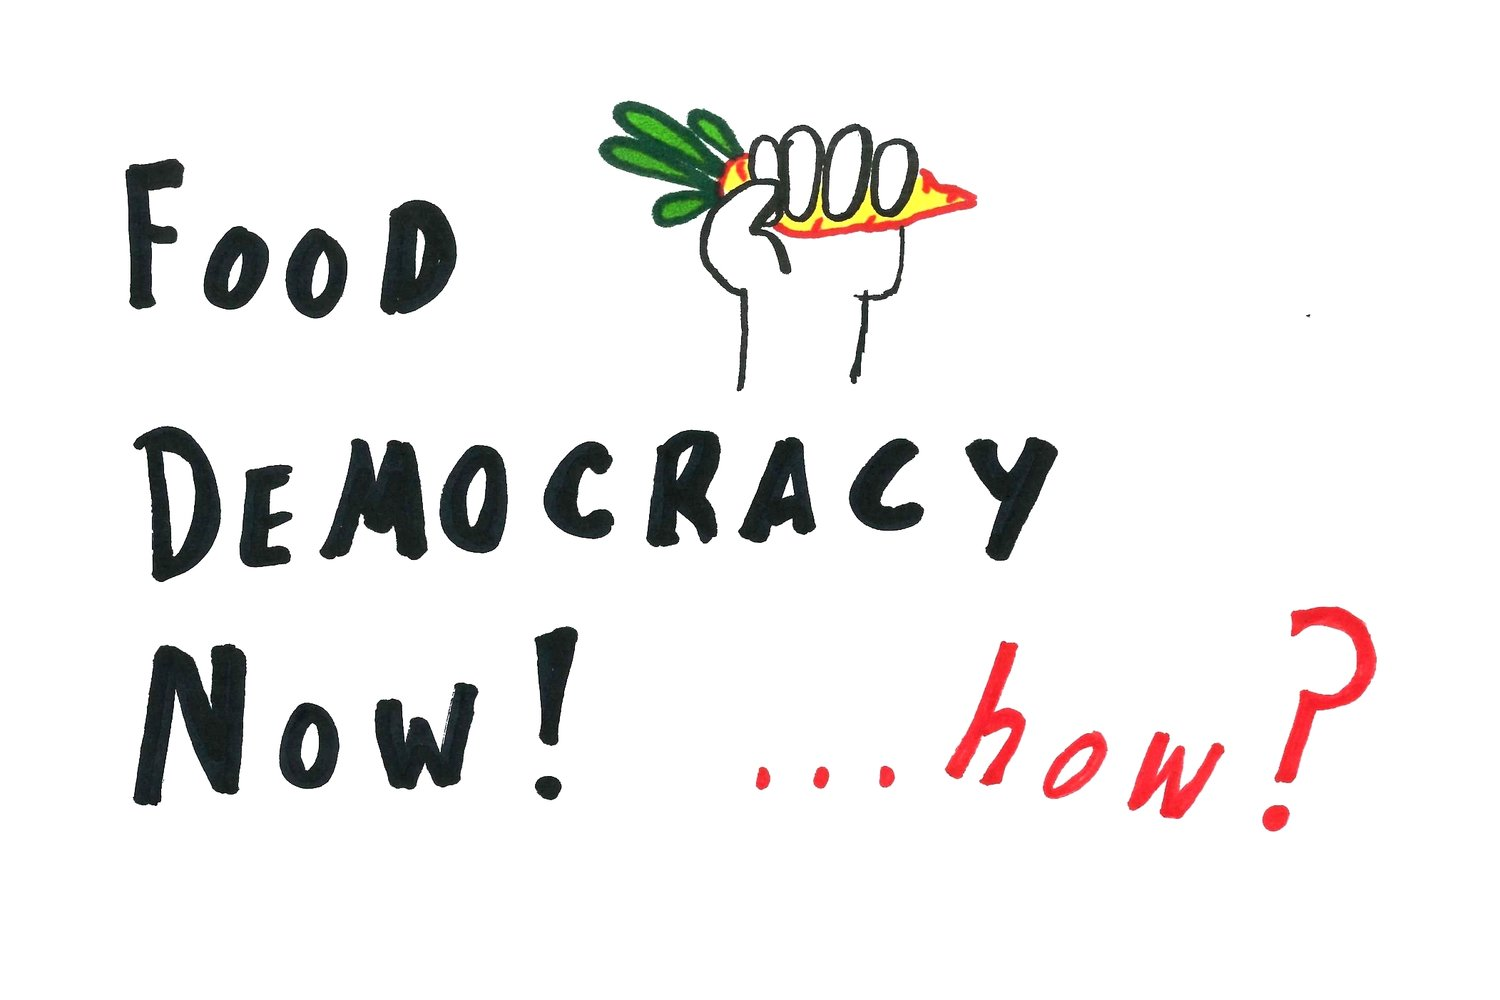 Food Democracy Now! ... how?